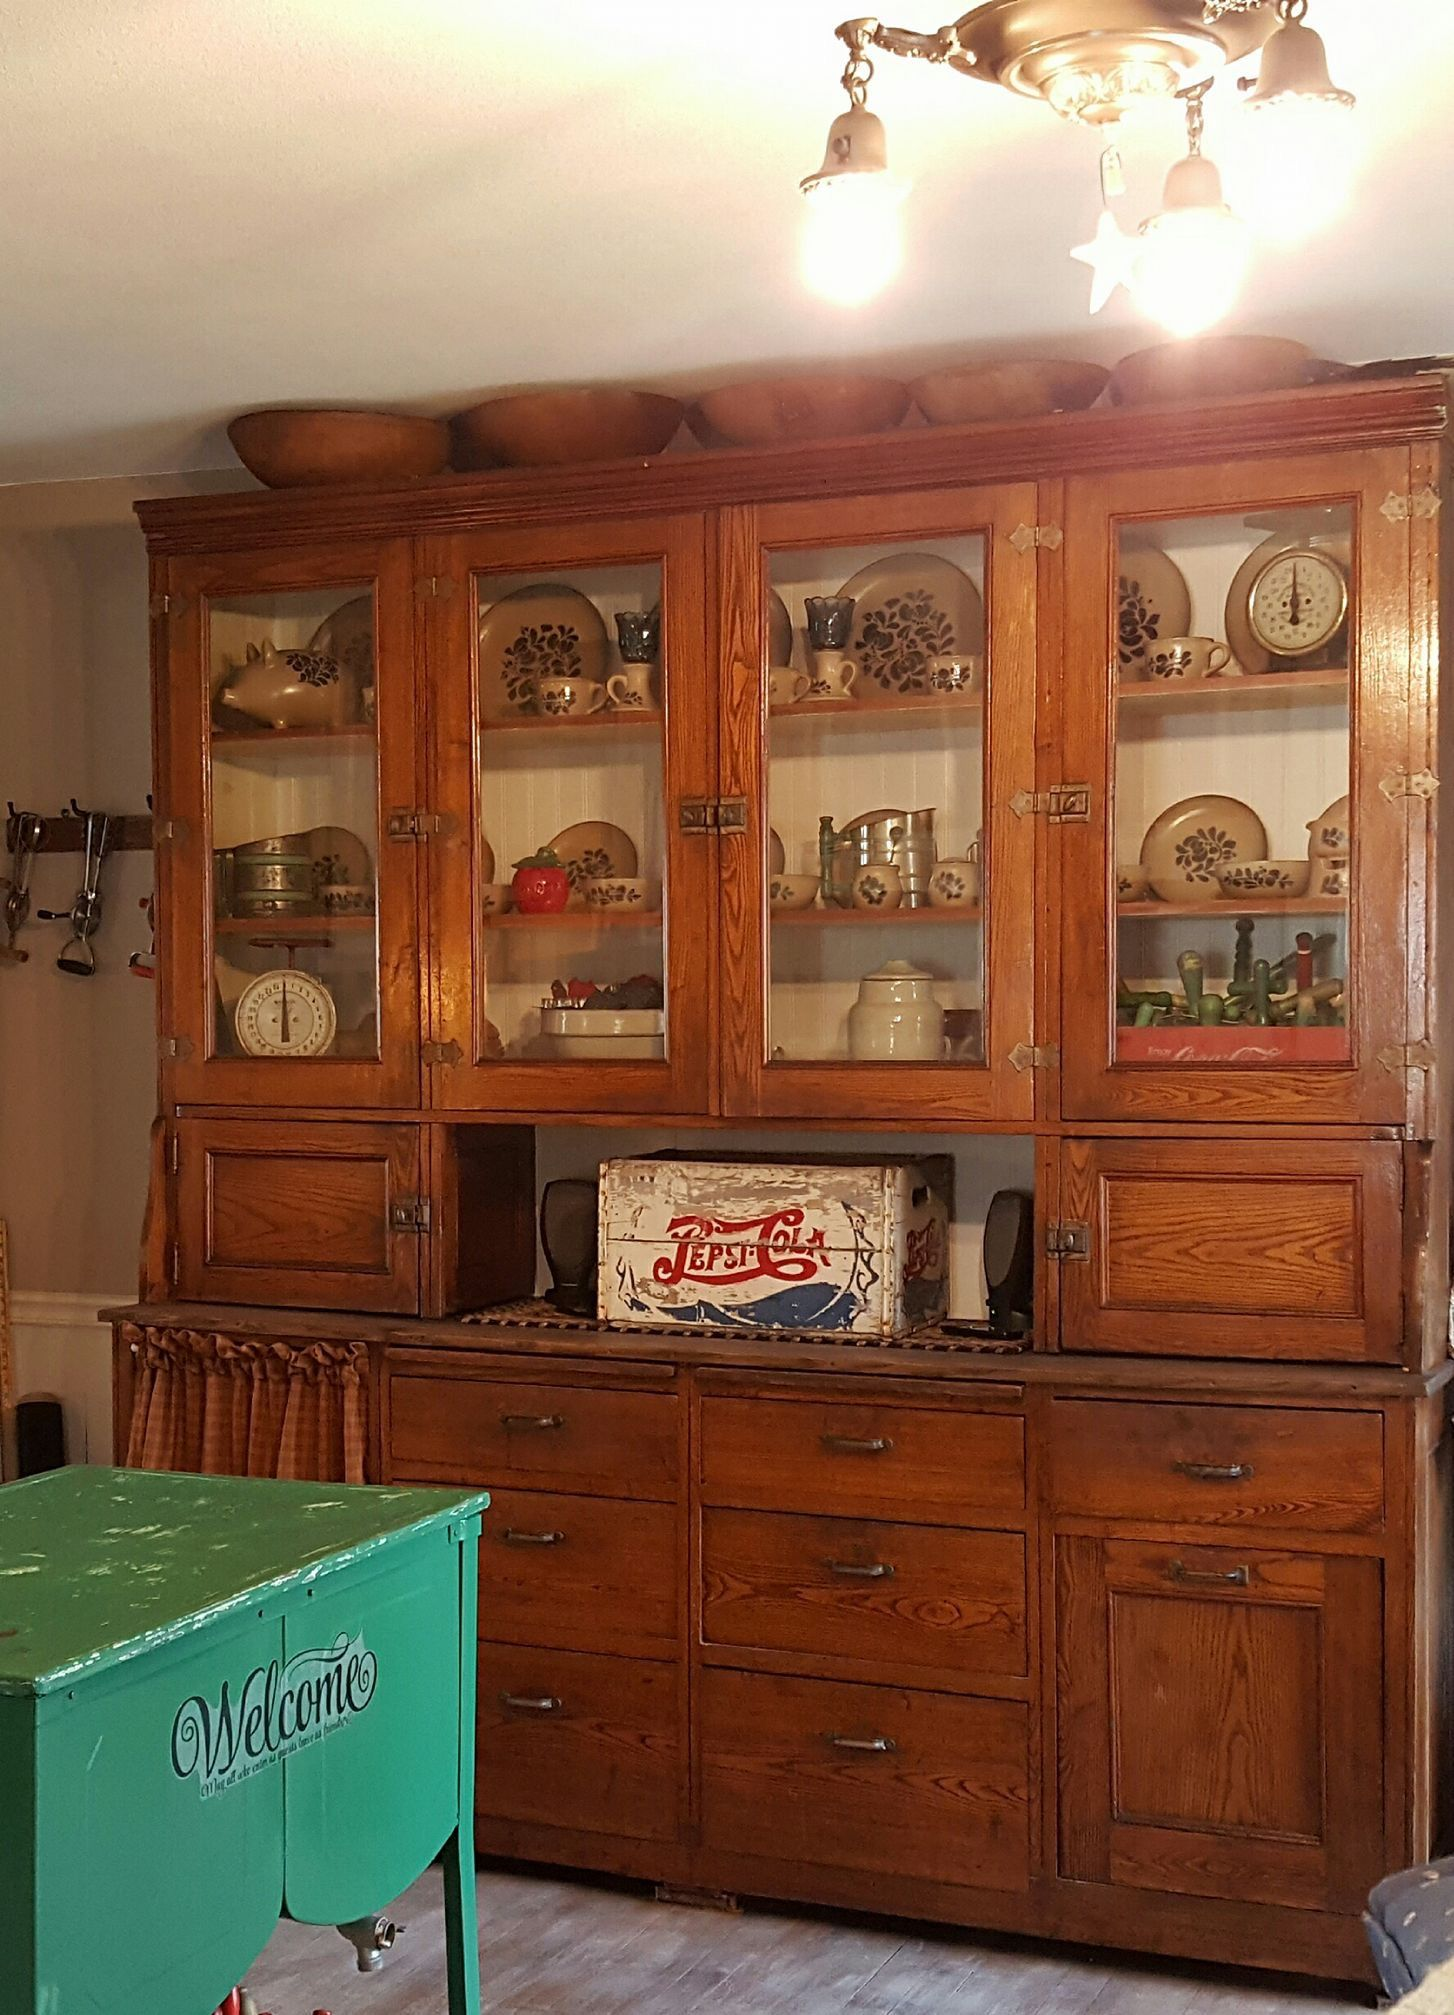 Beautiful Old Kitchen Cupboard The Light Fixture Antique Kitchen Cabinets Kitchen Cabinets On A Budget Antique Kitchen